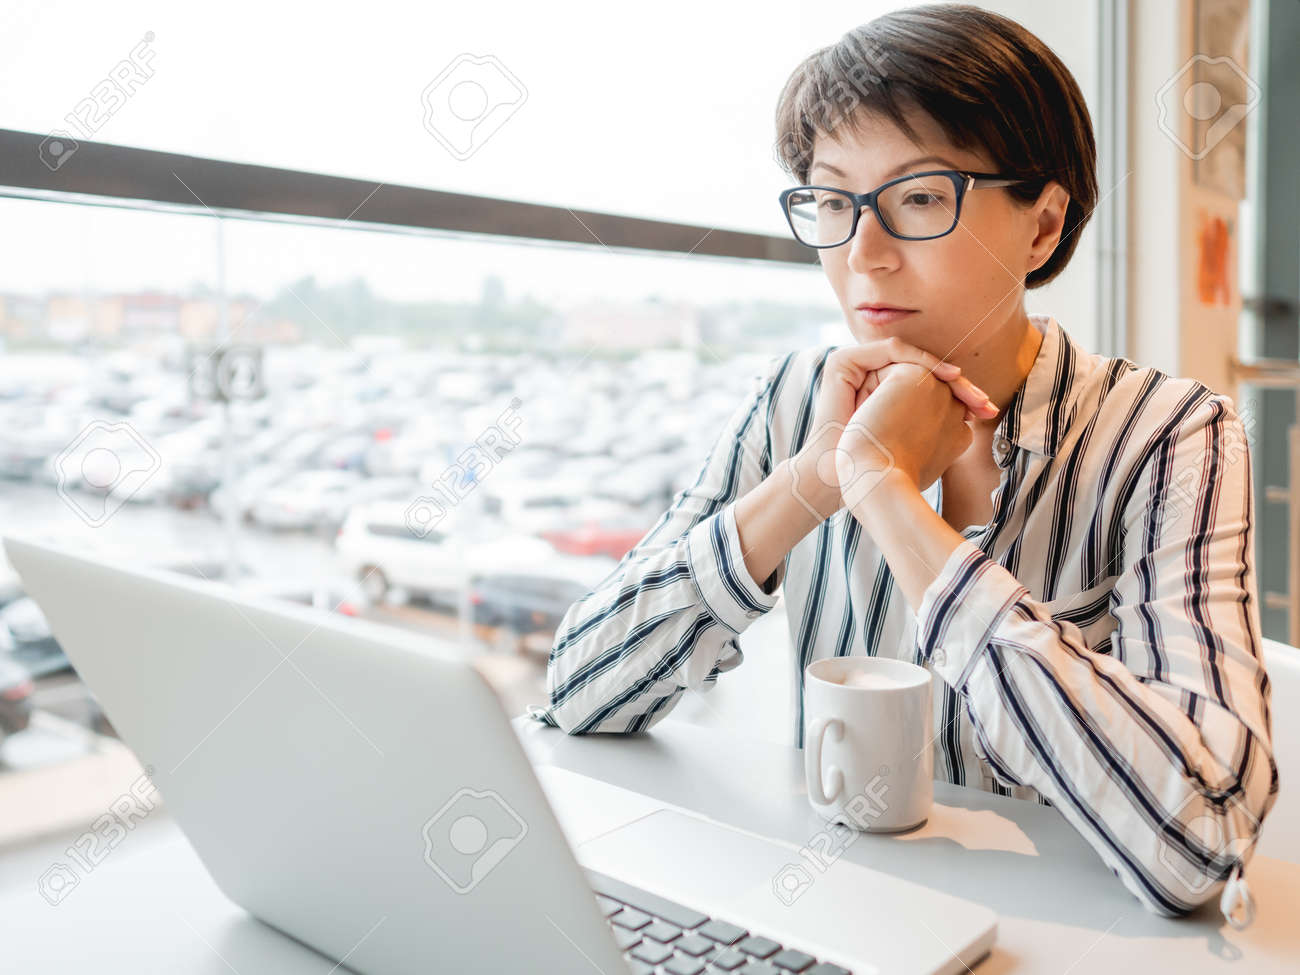 Business woman works with laptop in co-working center. Workplace for freelancers in business center. - 172806629